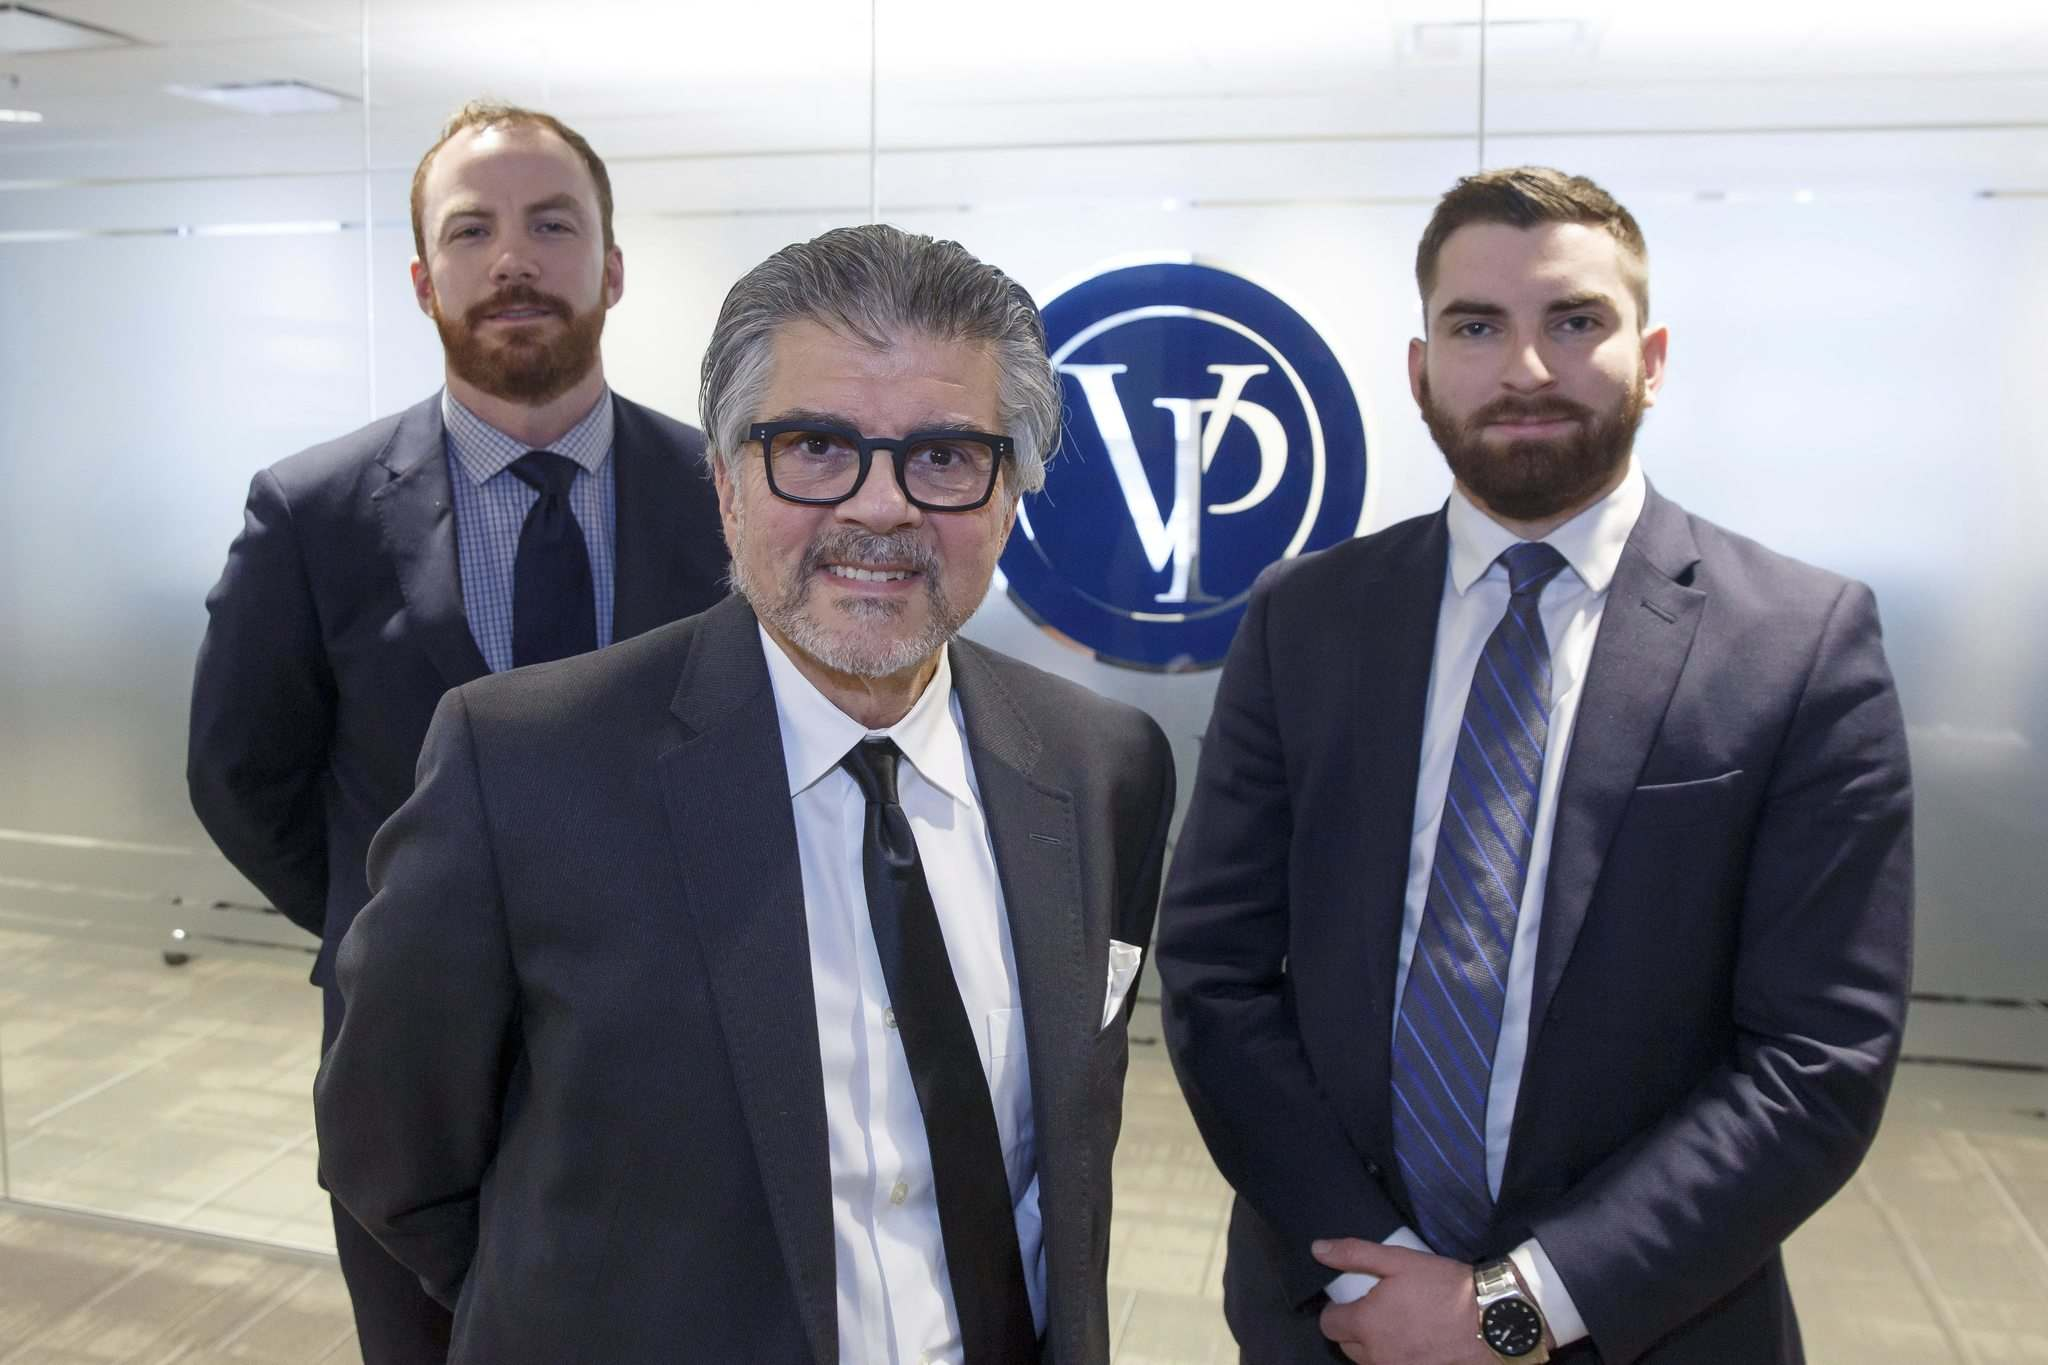 MIKE DEAL / WINNIPEG FREE PRESS</p><p>Larry Sarbit (centre) and his teammates Tim Skelly (left) and Tyler Baessler have joined Value Partners Investment, a Winnipeg mutual fund company with about $3 billion under management.</p>